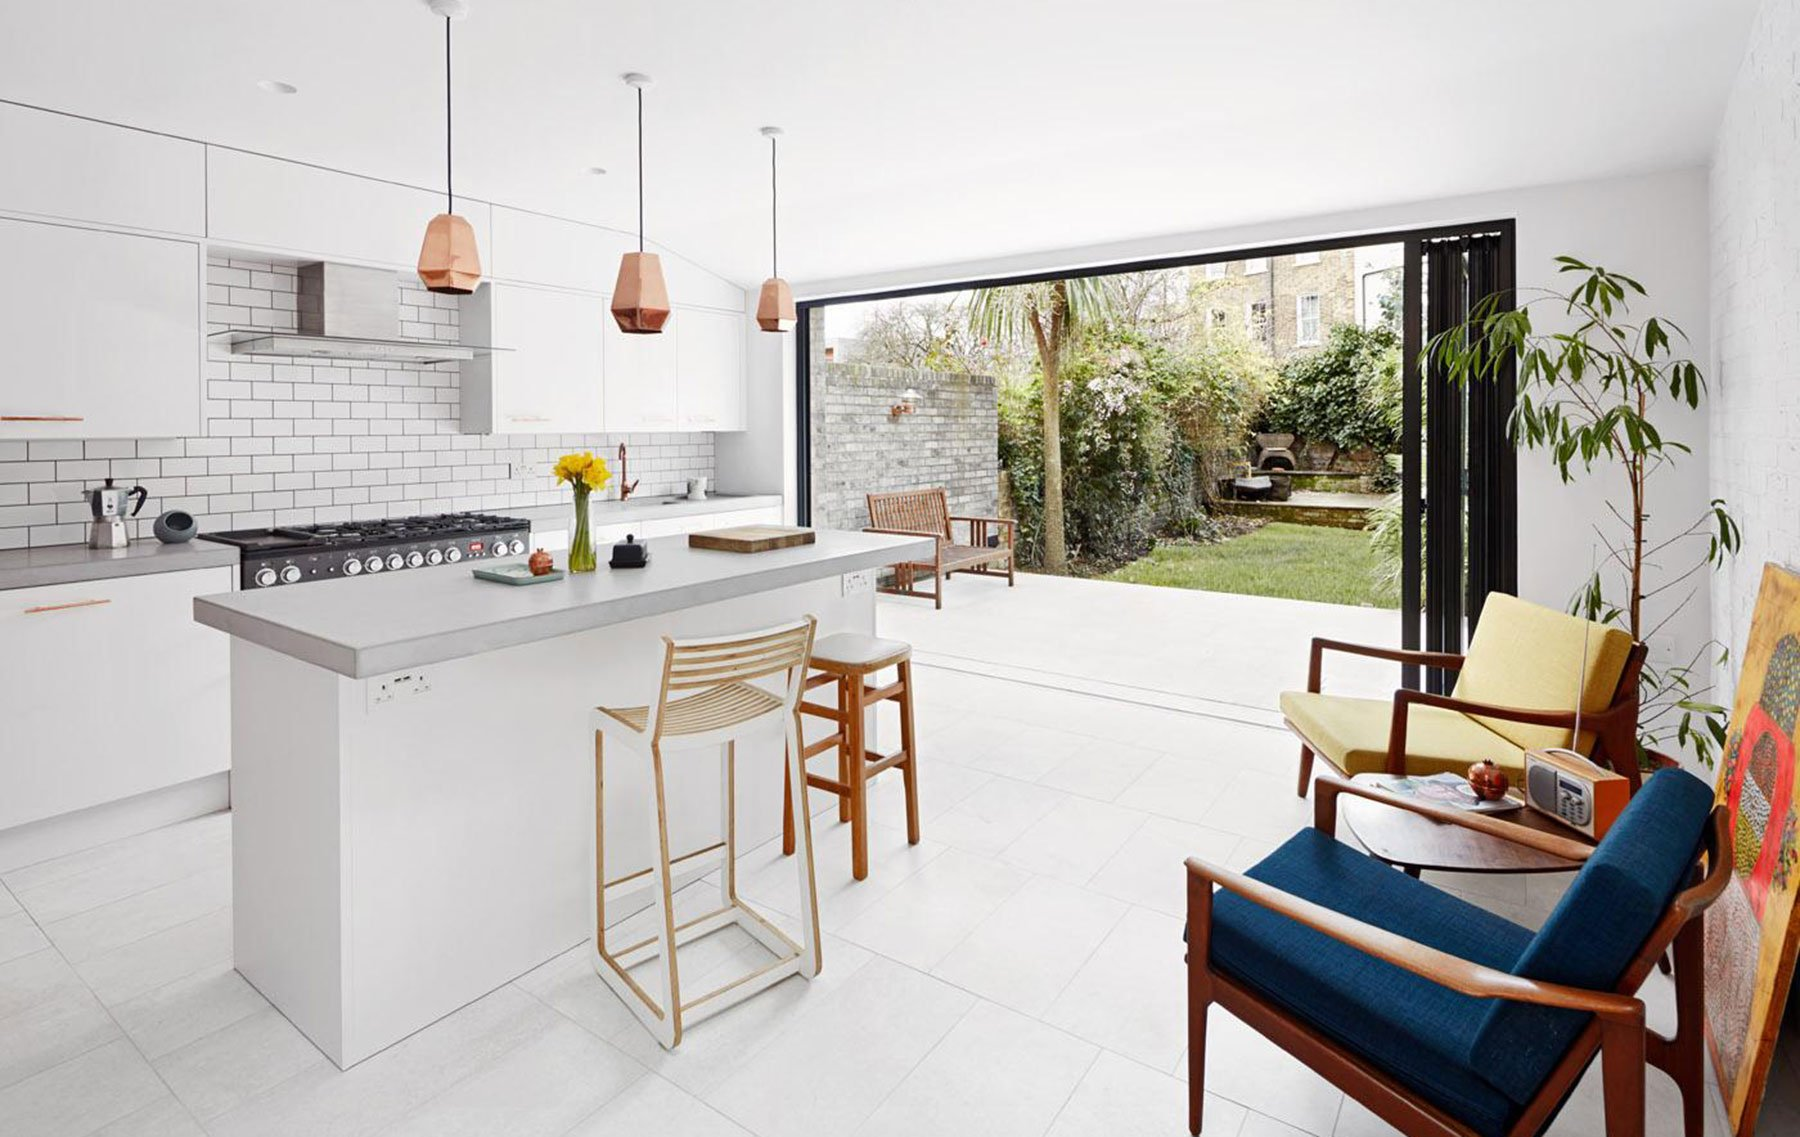 Bifold doors open up Hackney home